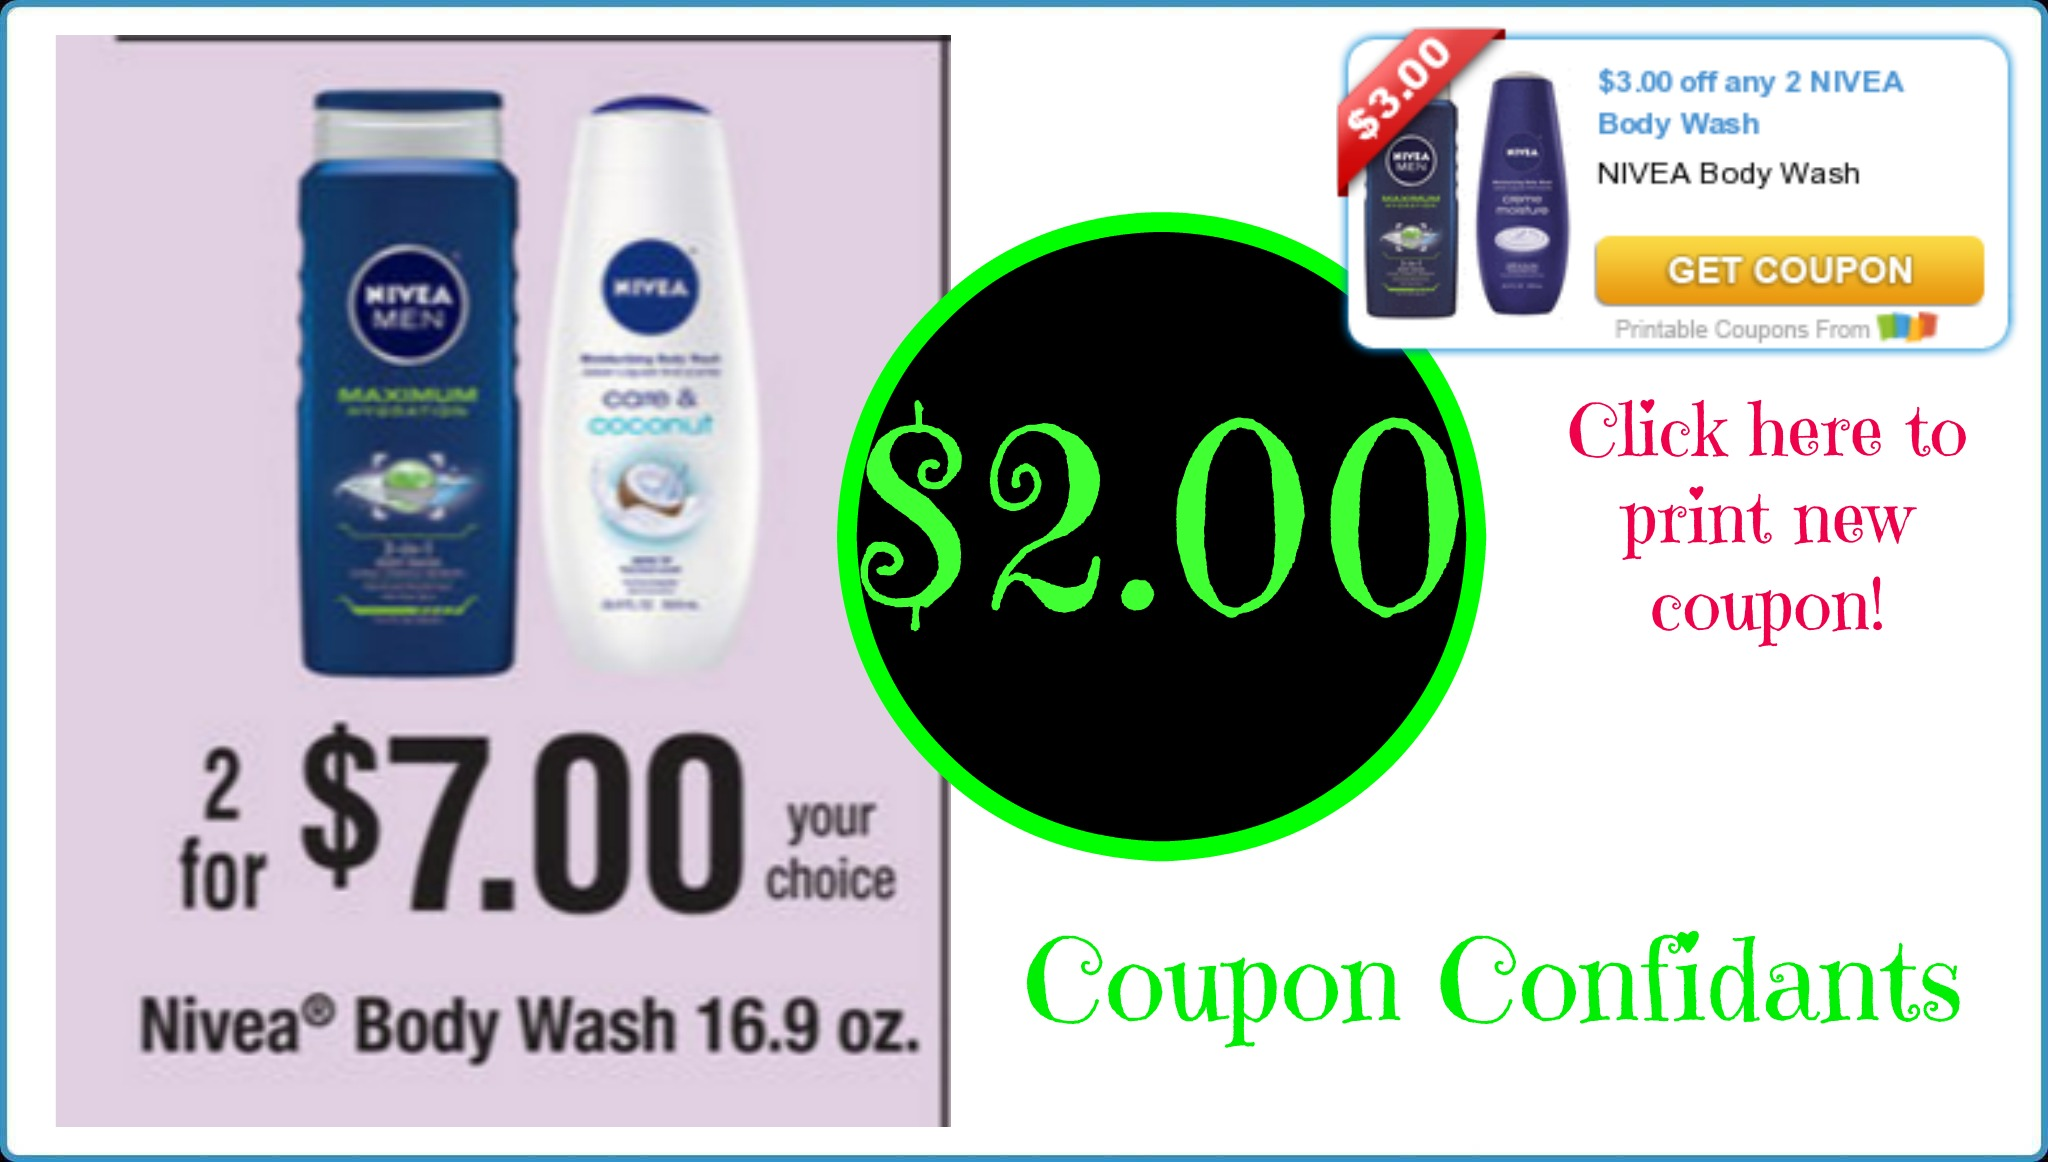 picture relating to 3.00 Off Nivea Printable Coupon titled Nivea Physique Clean $2.00 @ Publix! Click on right here in direction of print fresh